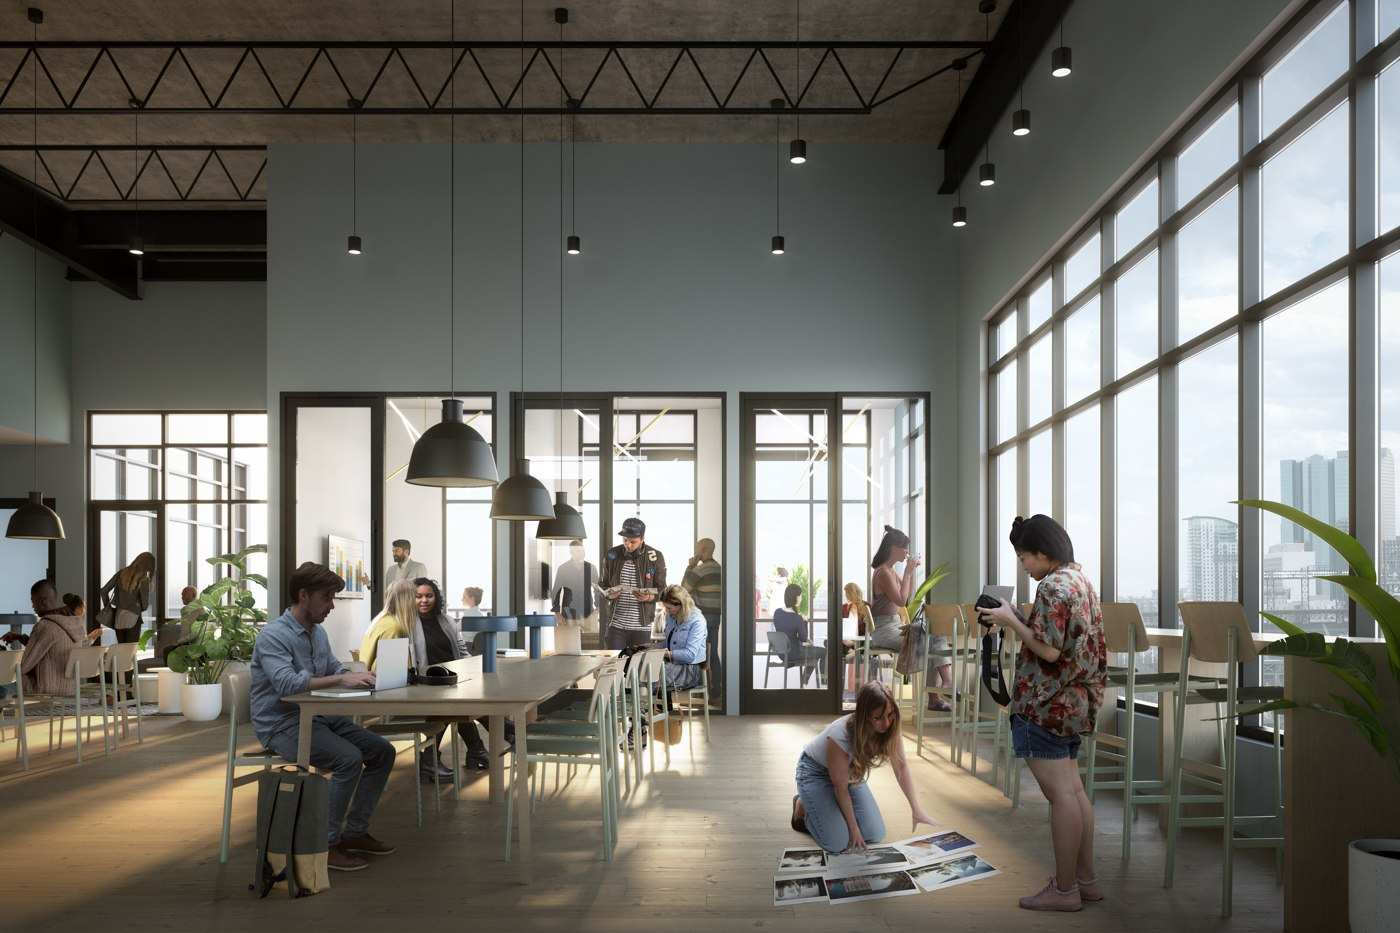 Interior view of X Denver coworking space, with residents using community desks and private offices